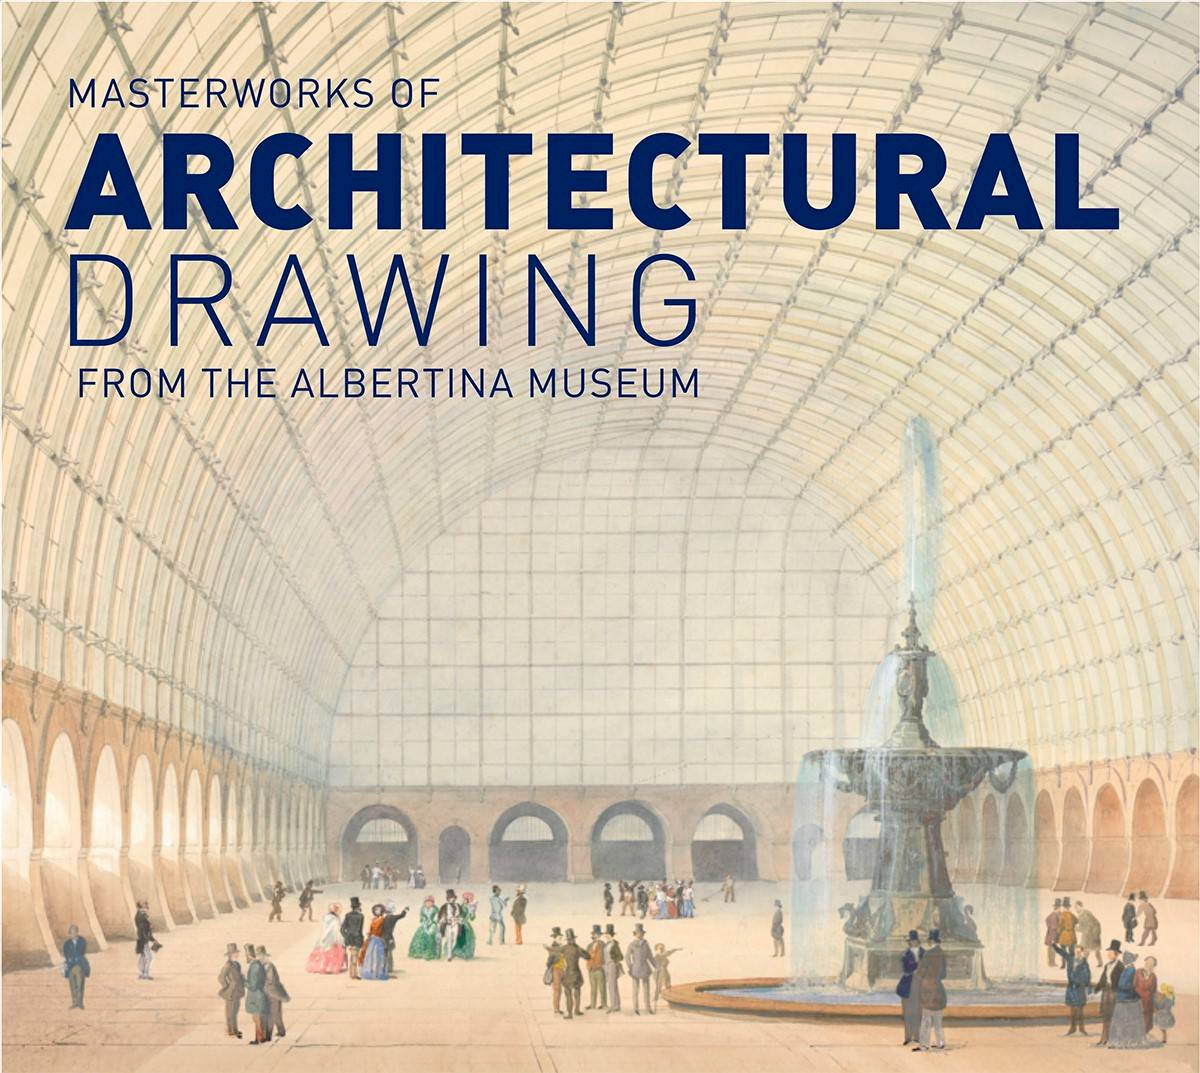 architectural drawings. Masterworks Of Architectural Drawings From The ALBERTINA Museum